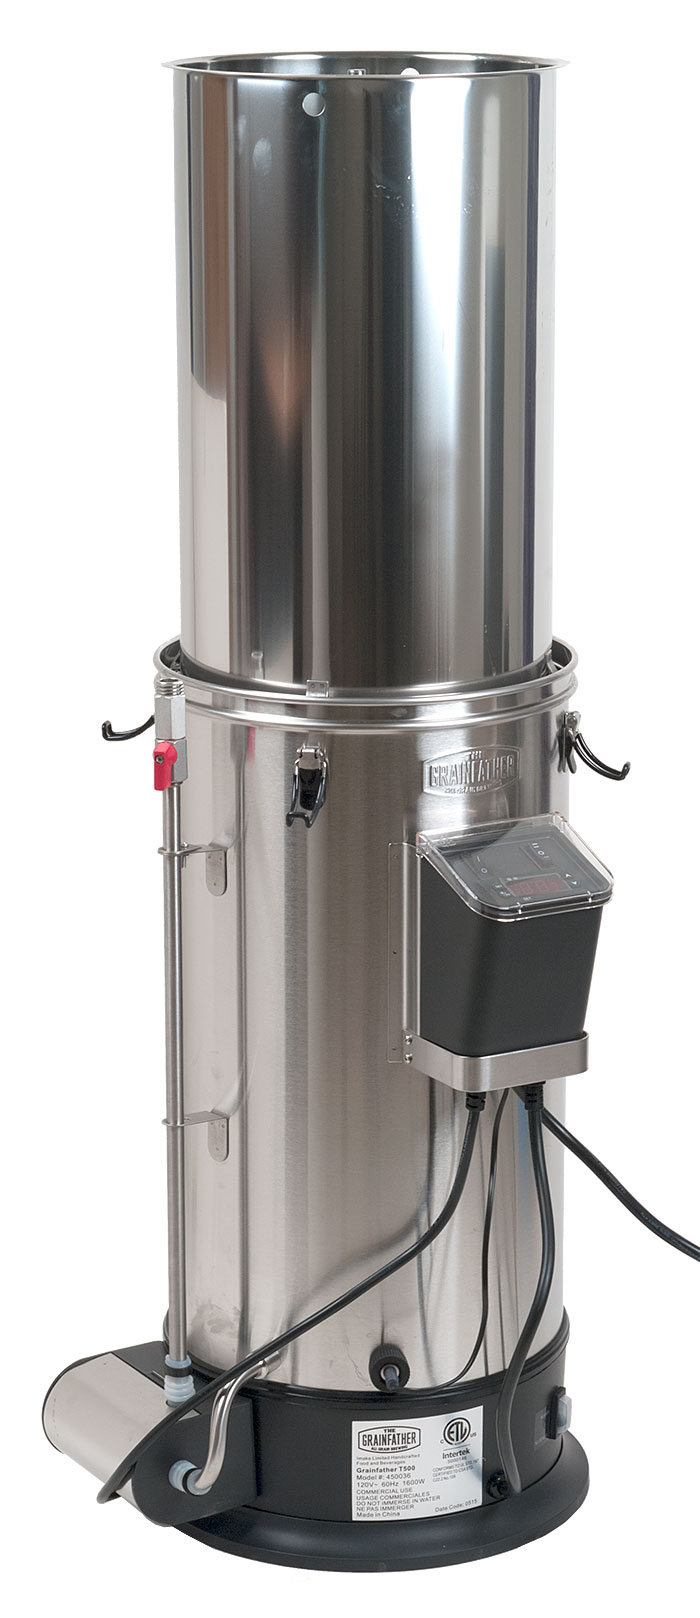 The Grainfather Is An All In One Beer Making Machine